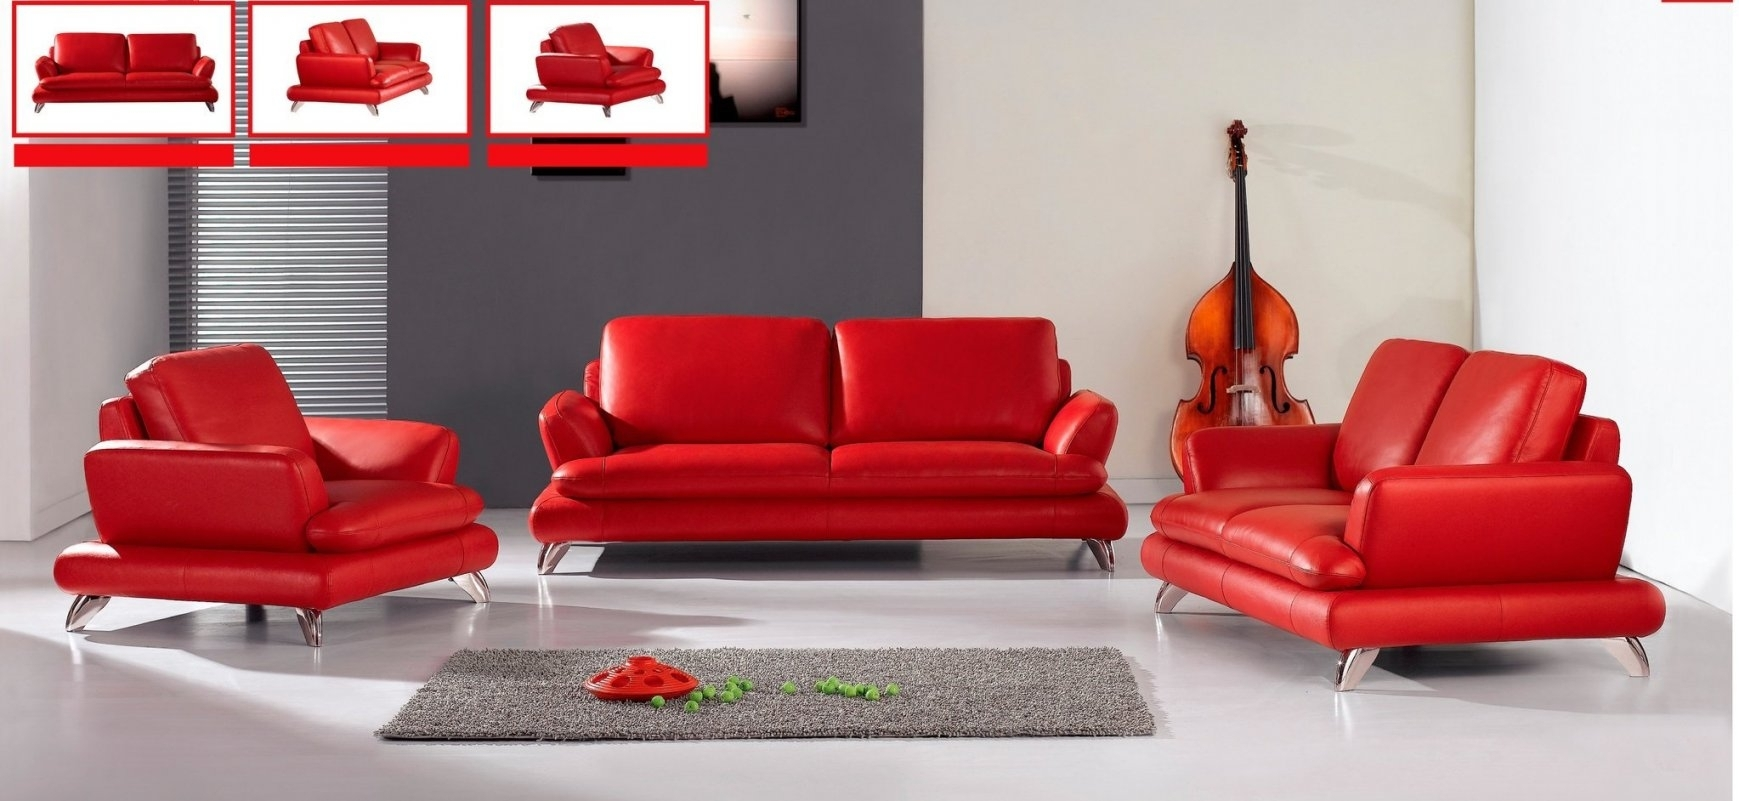 Contemporary Red Leather Sofa 66 For Living Room Sofa Regarding Red Regarding Red Leather Sofas (View 13 of 15)